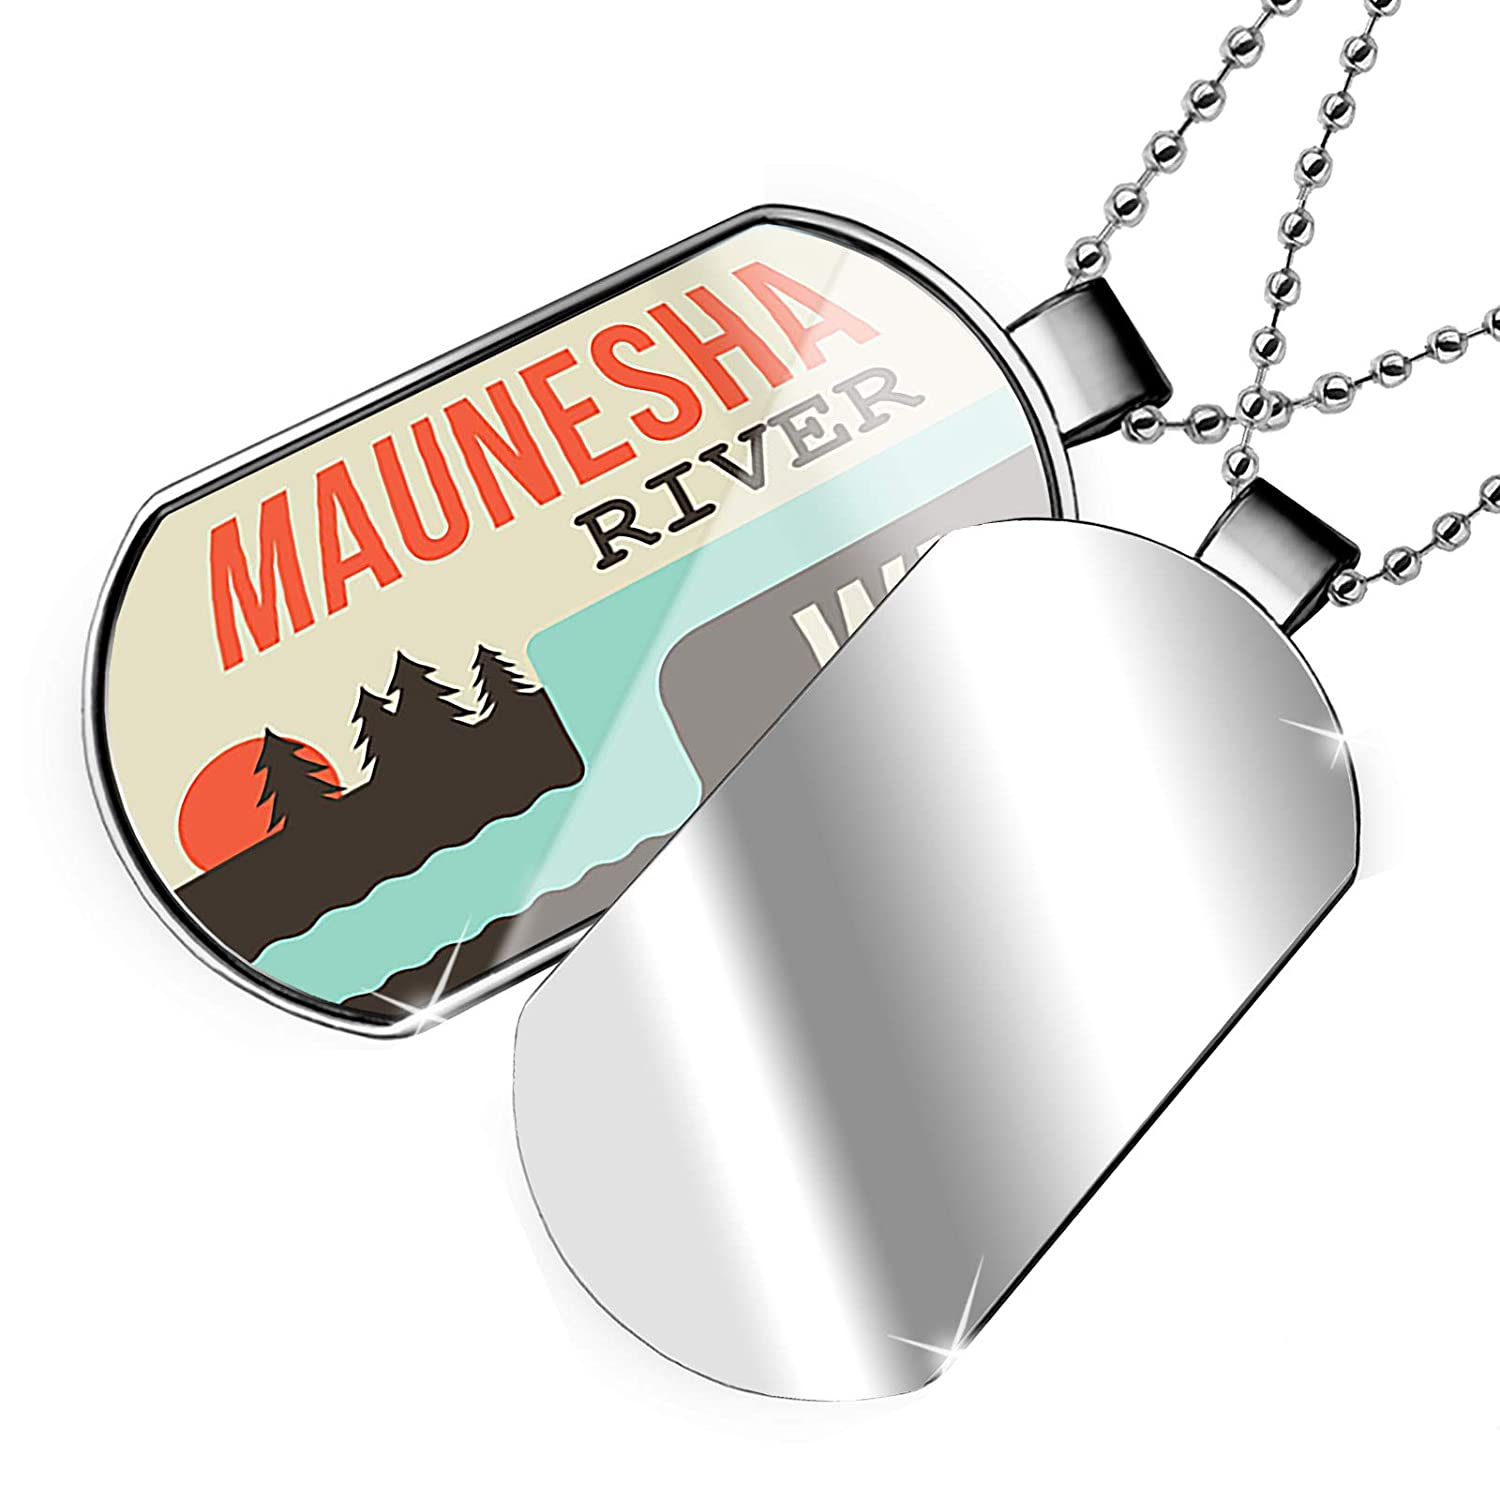 NEONBLOND Personalized Name Engraved USA Rivers Maunesha River Wisconsin Dogtag Necklace